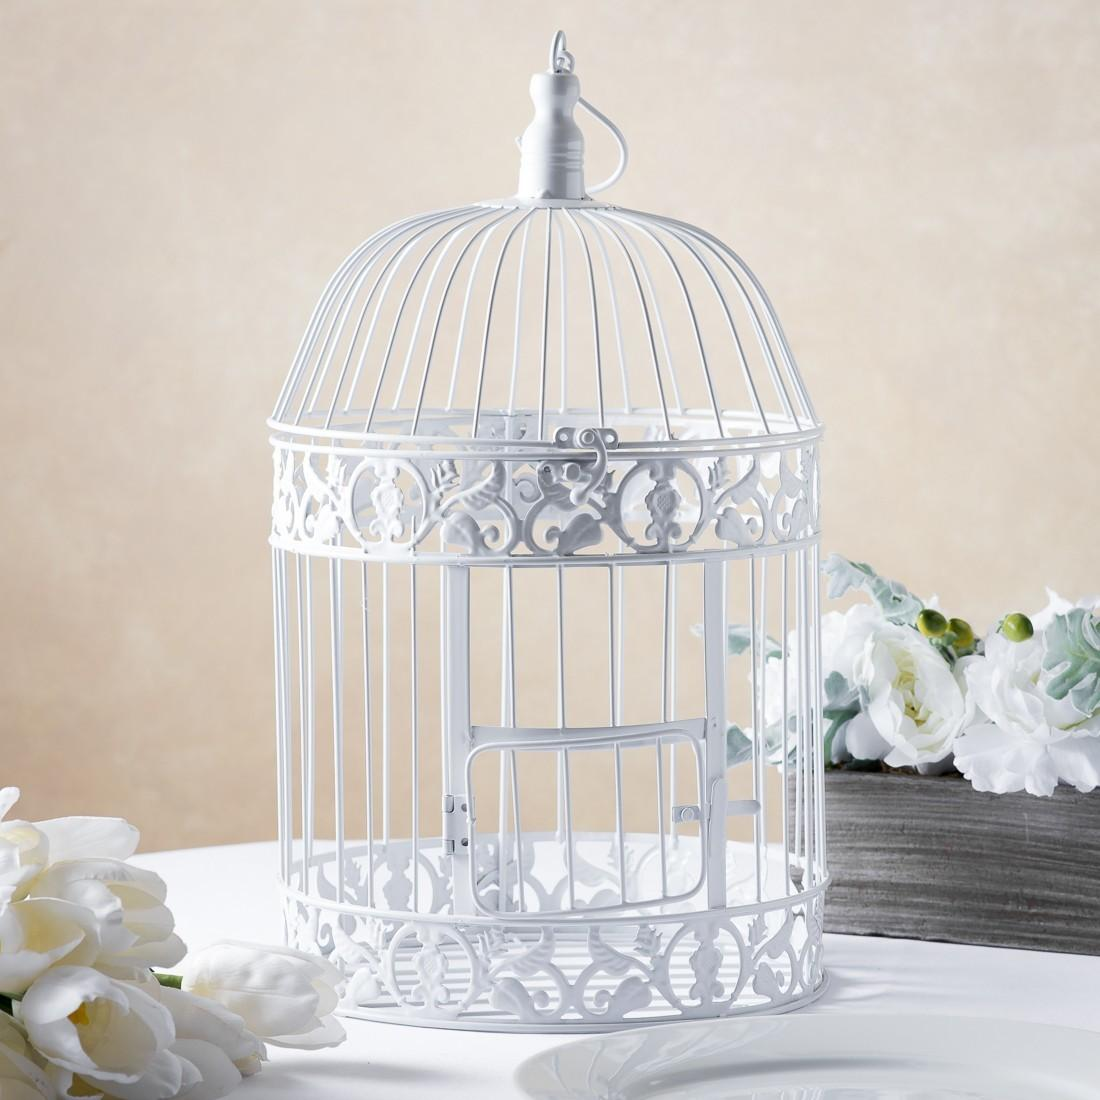 White Bird Cages Weddings